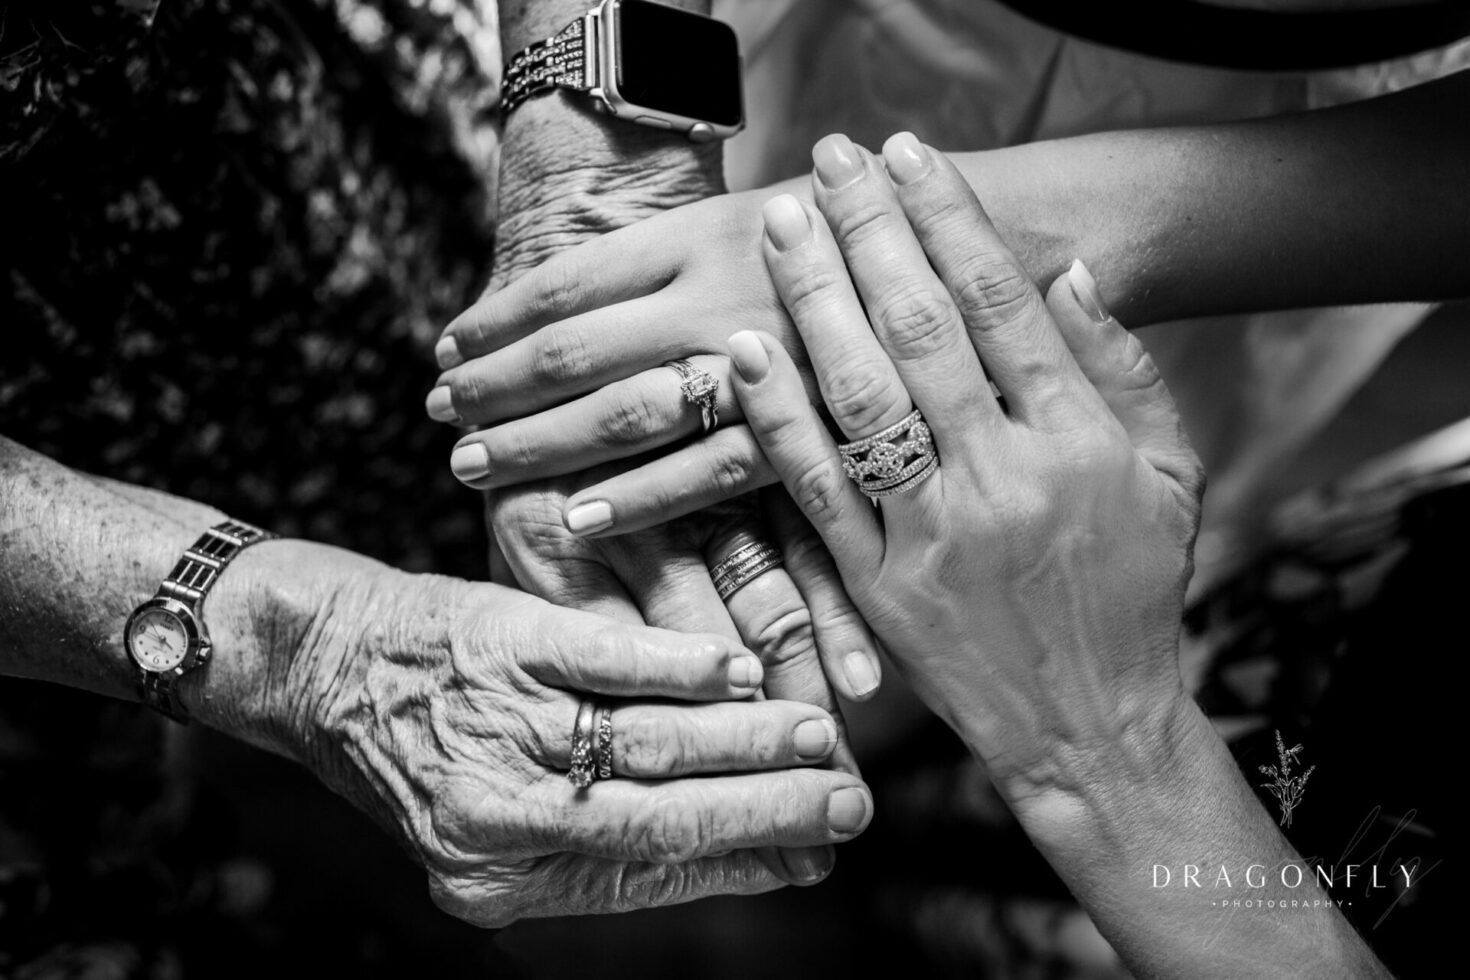 Black and white portraits of hands